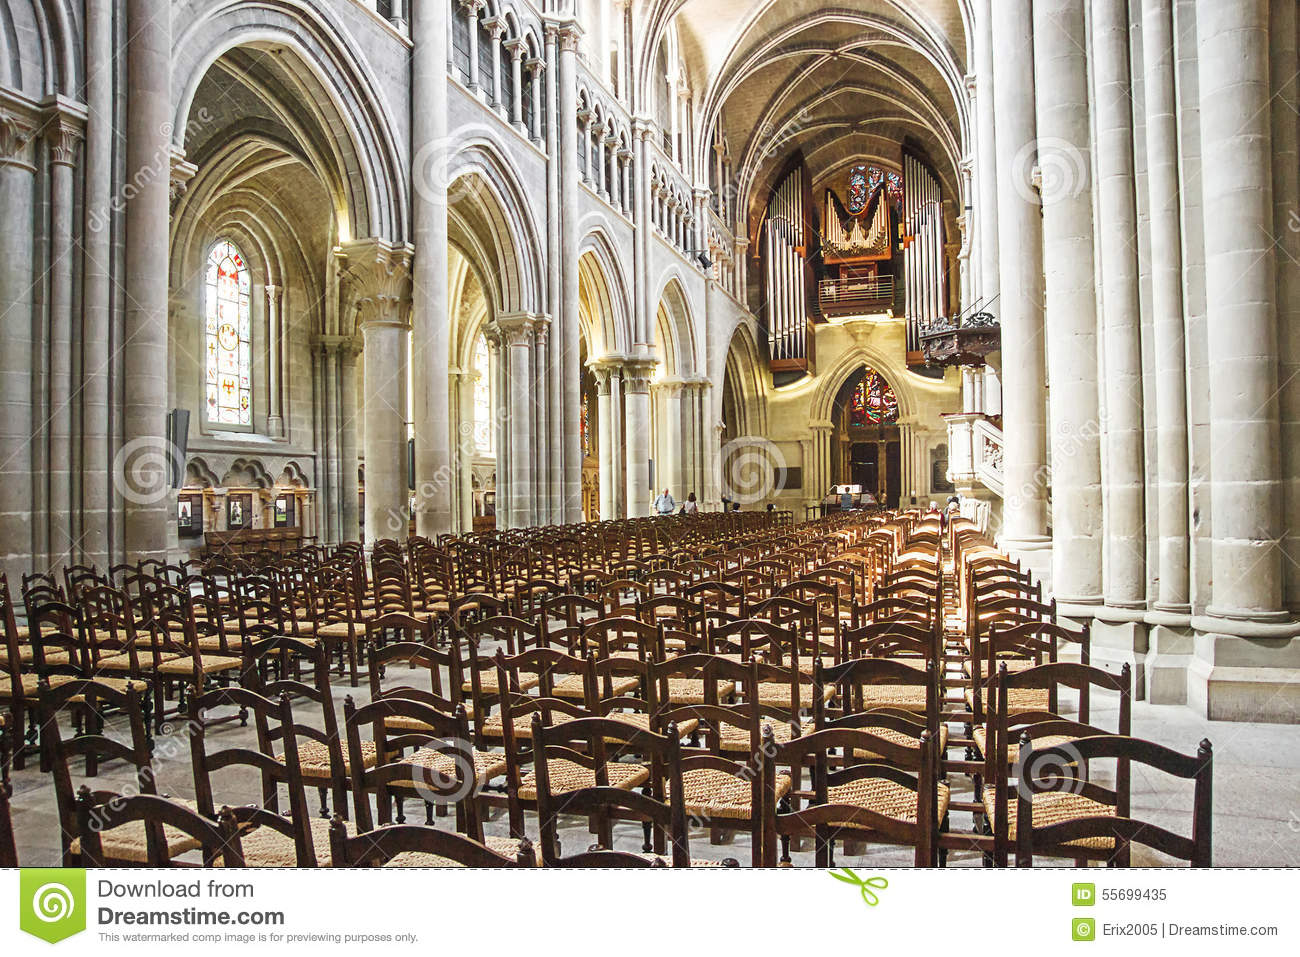 The cathedral of notre dame lausanne hall interior stock for Interieur messe